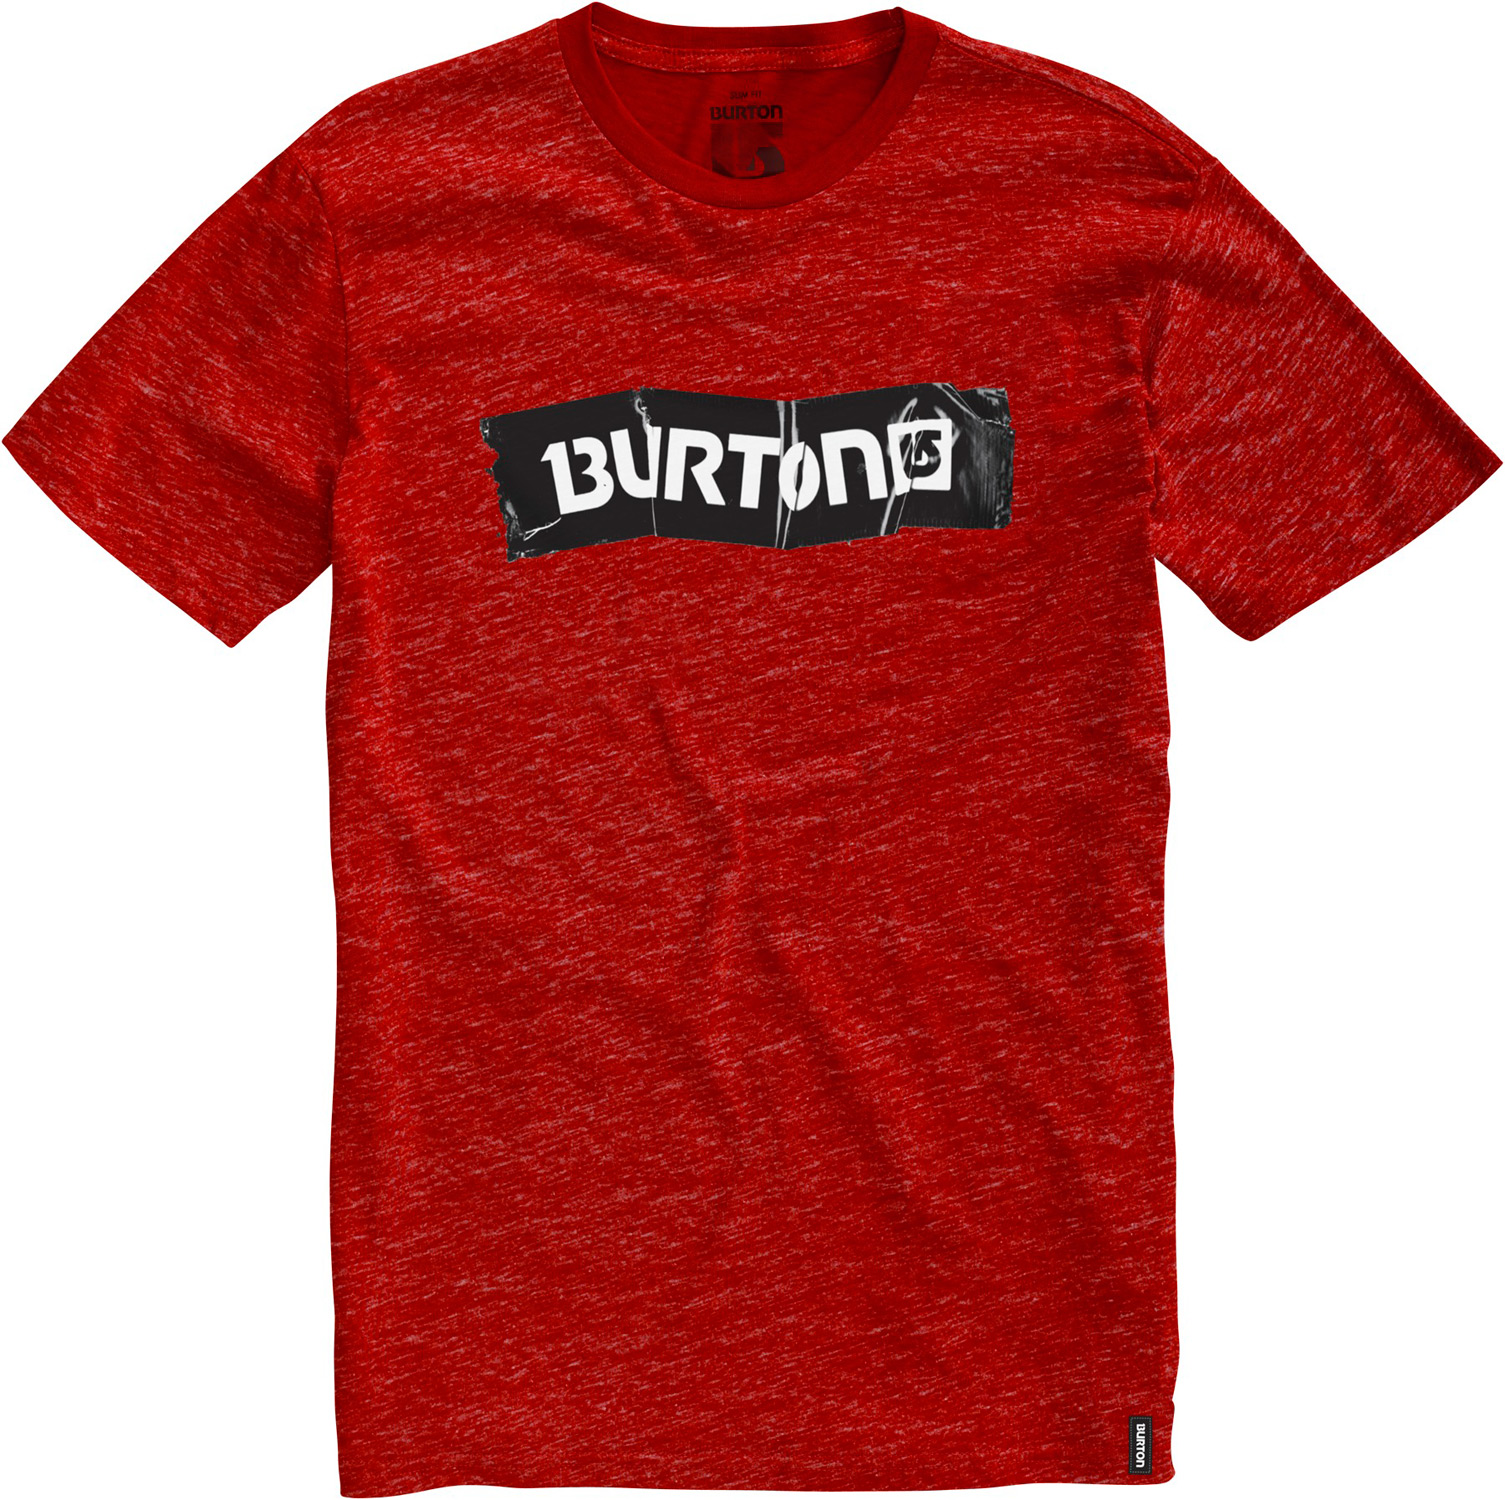 Snowboard Burton Taped Slim Fit T-Shirt - $11.87